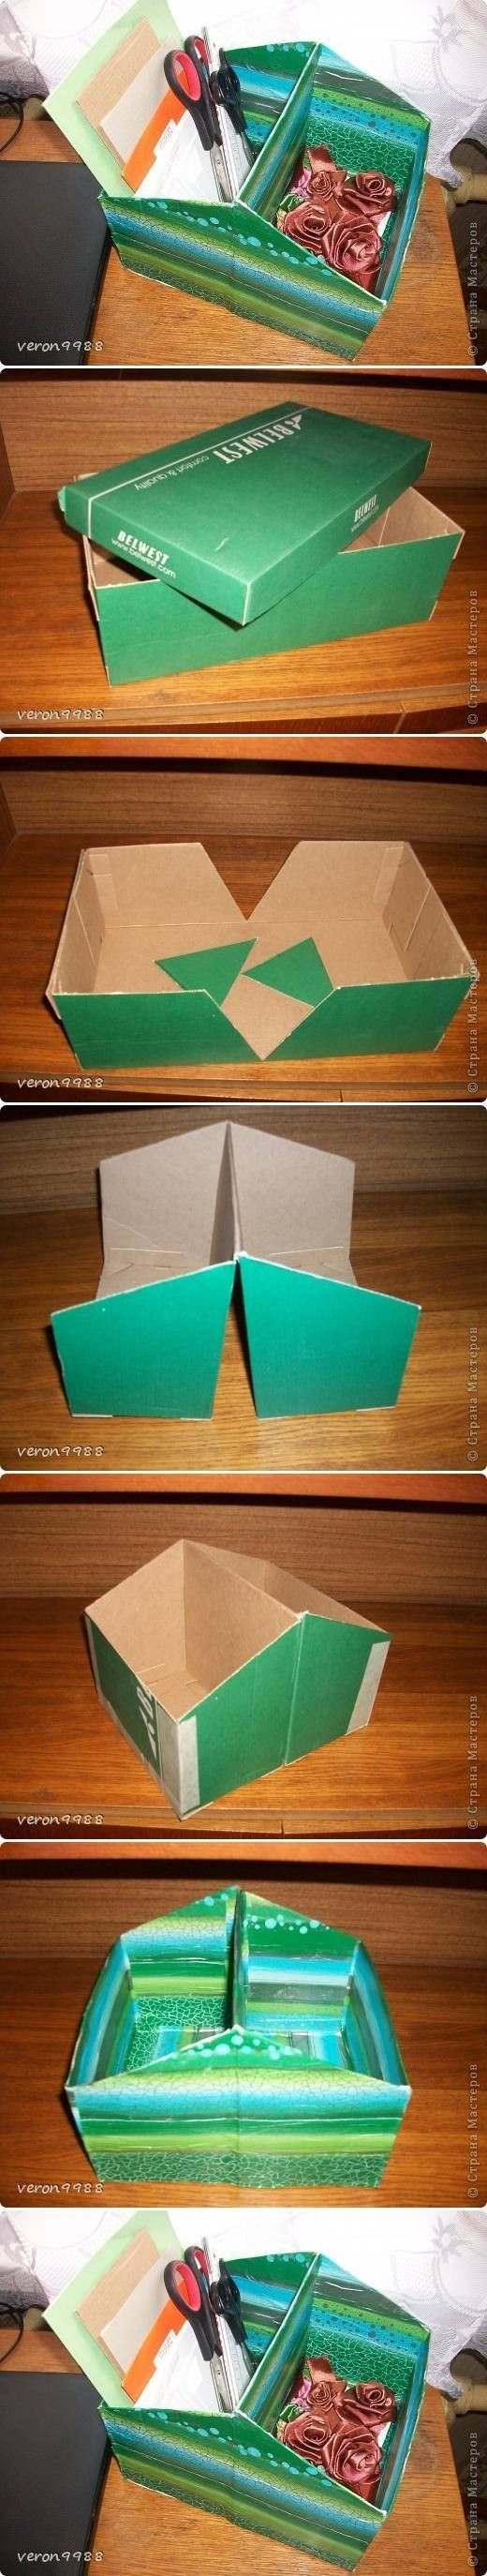 Best ideas about DIY Shoe Box Desk Organizer . Save or Pin DIY Shoe Box Organizer s and for Now.